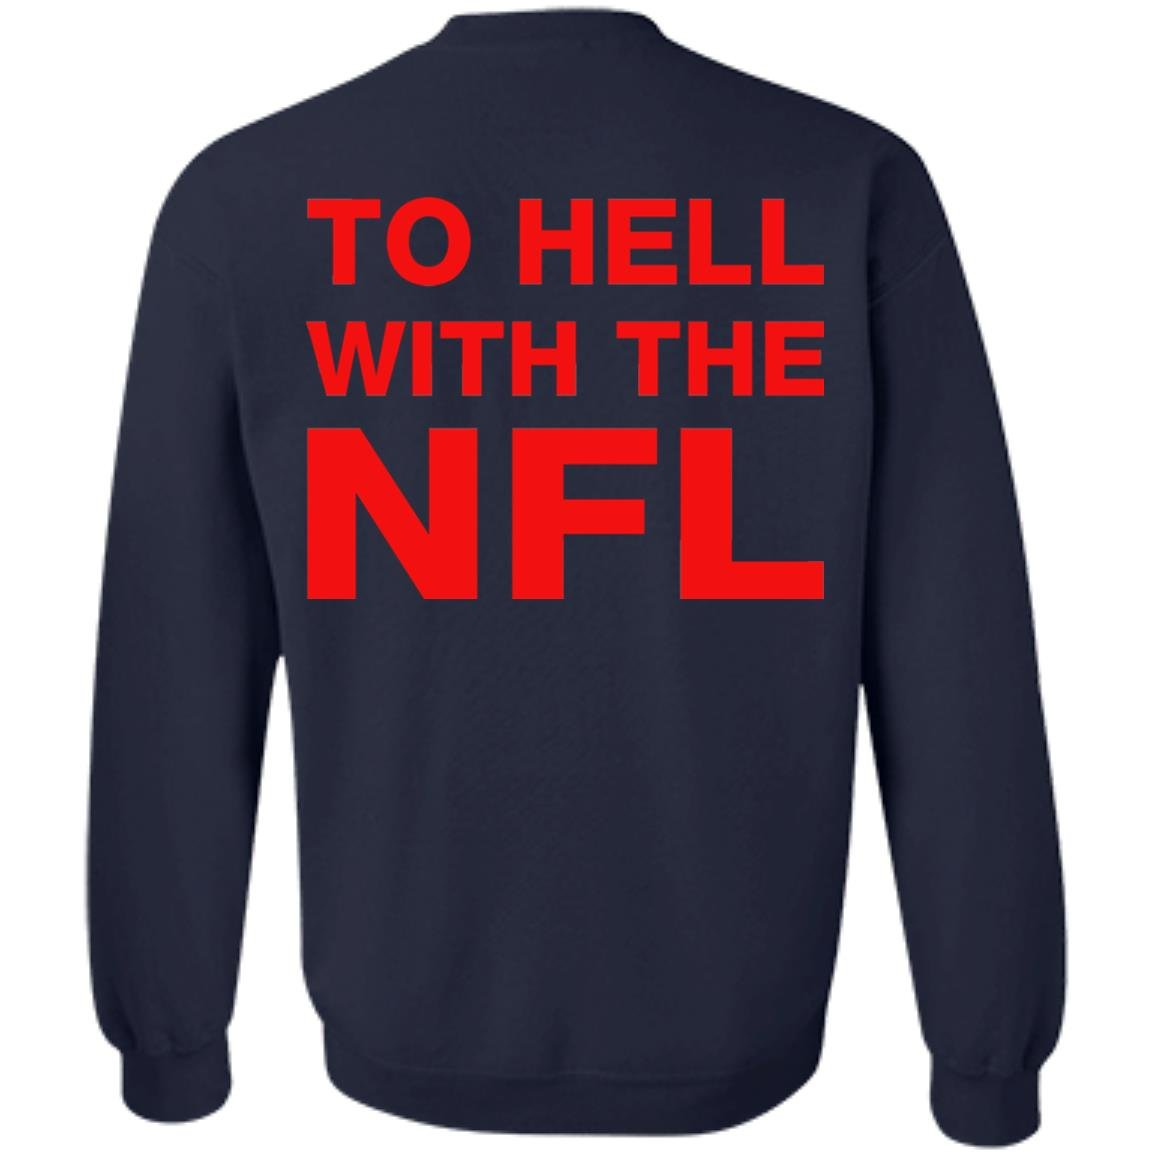 image 333 - To Hell With The NFL Shirt, Sweatshirt, Hoodie